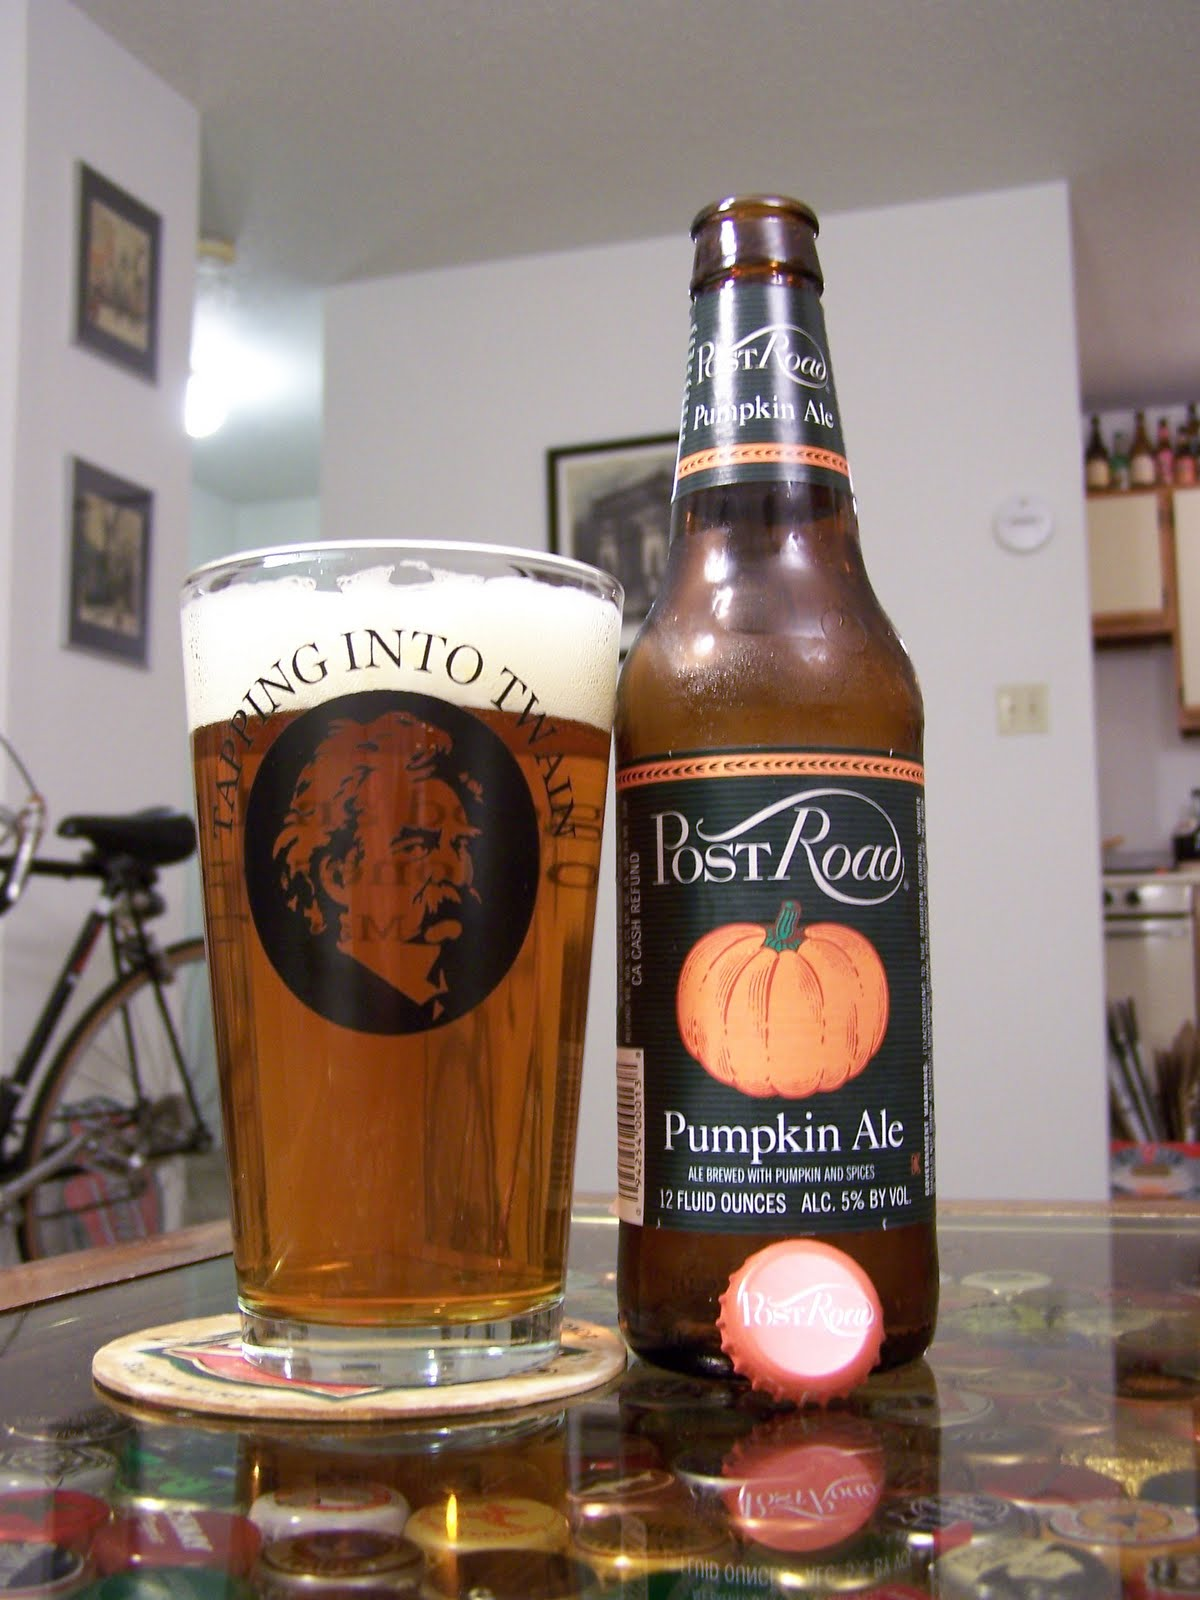 Aperitif Cocktail Beer Review – Brooklyn Brewery Post Road Pumpkin Ale – It